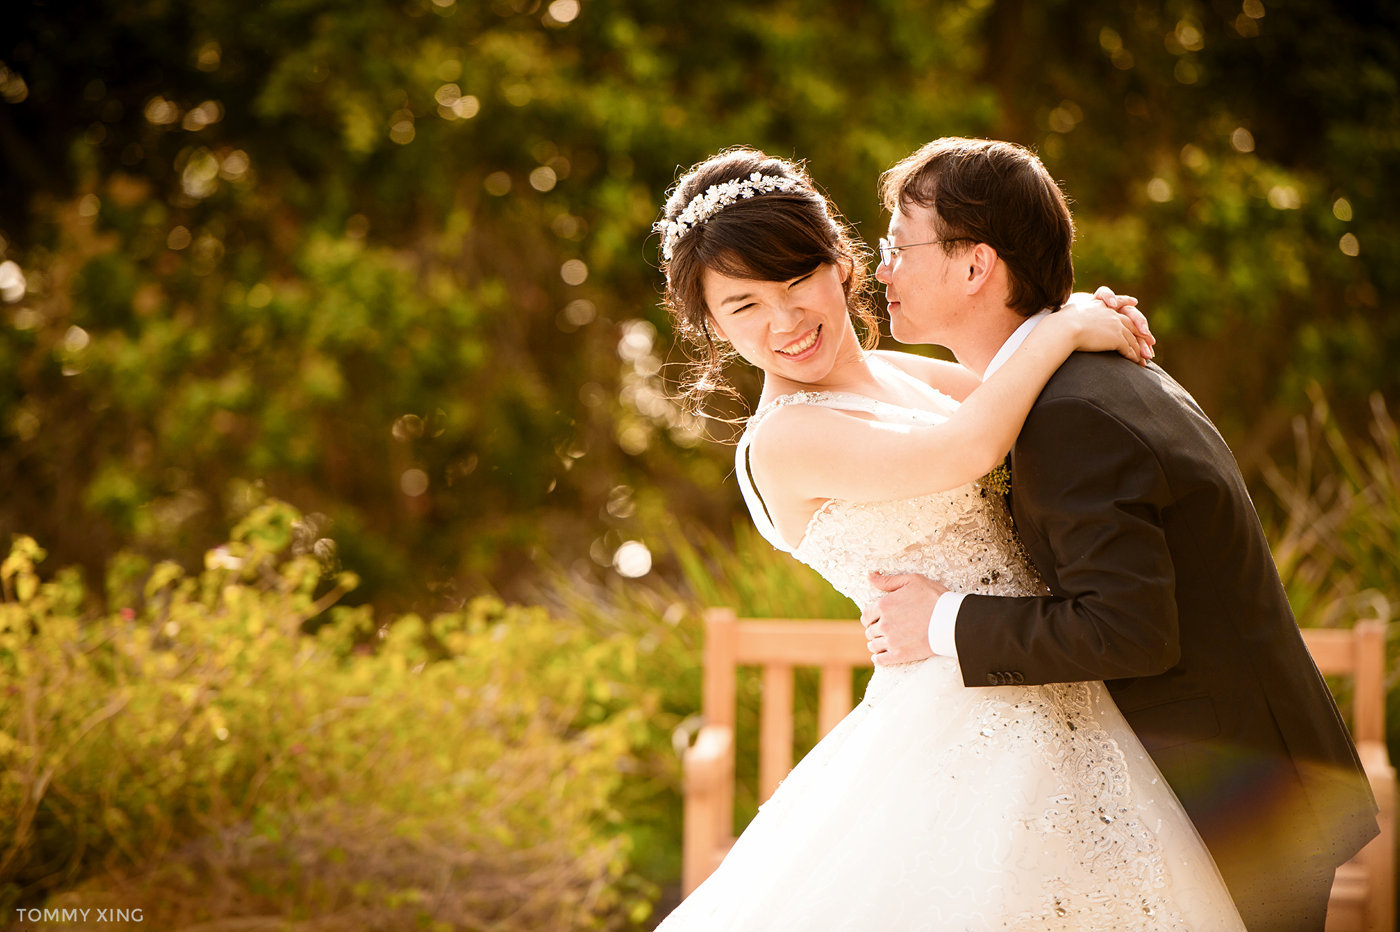 Qinglu Meng & Daozheng Chen Wedding Slideshow-73-E.JPG